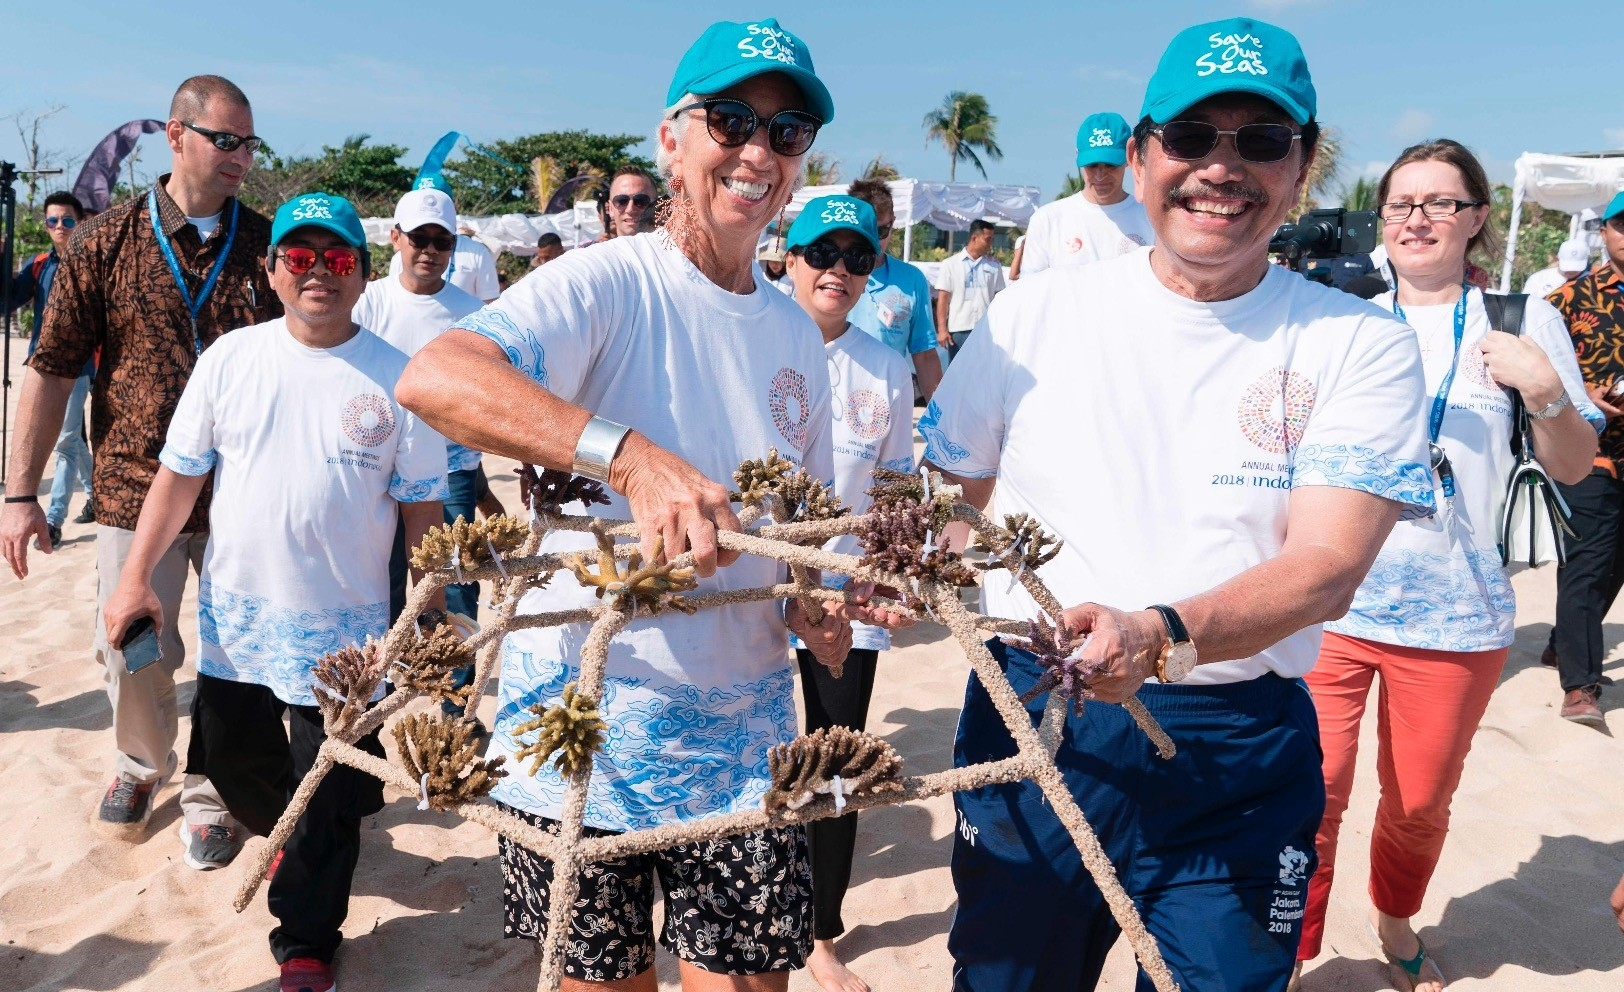 Lagarde (L) and Indonesiau2019s Maritime Affairs Minister Luhut Binsar Pandjaitan carry coral fragments to water where they will help rehabilitate the threatened coral reefs, ahead of the start of the 2018 IMF and World Bank annual meetings in Nusa Dua